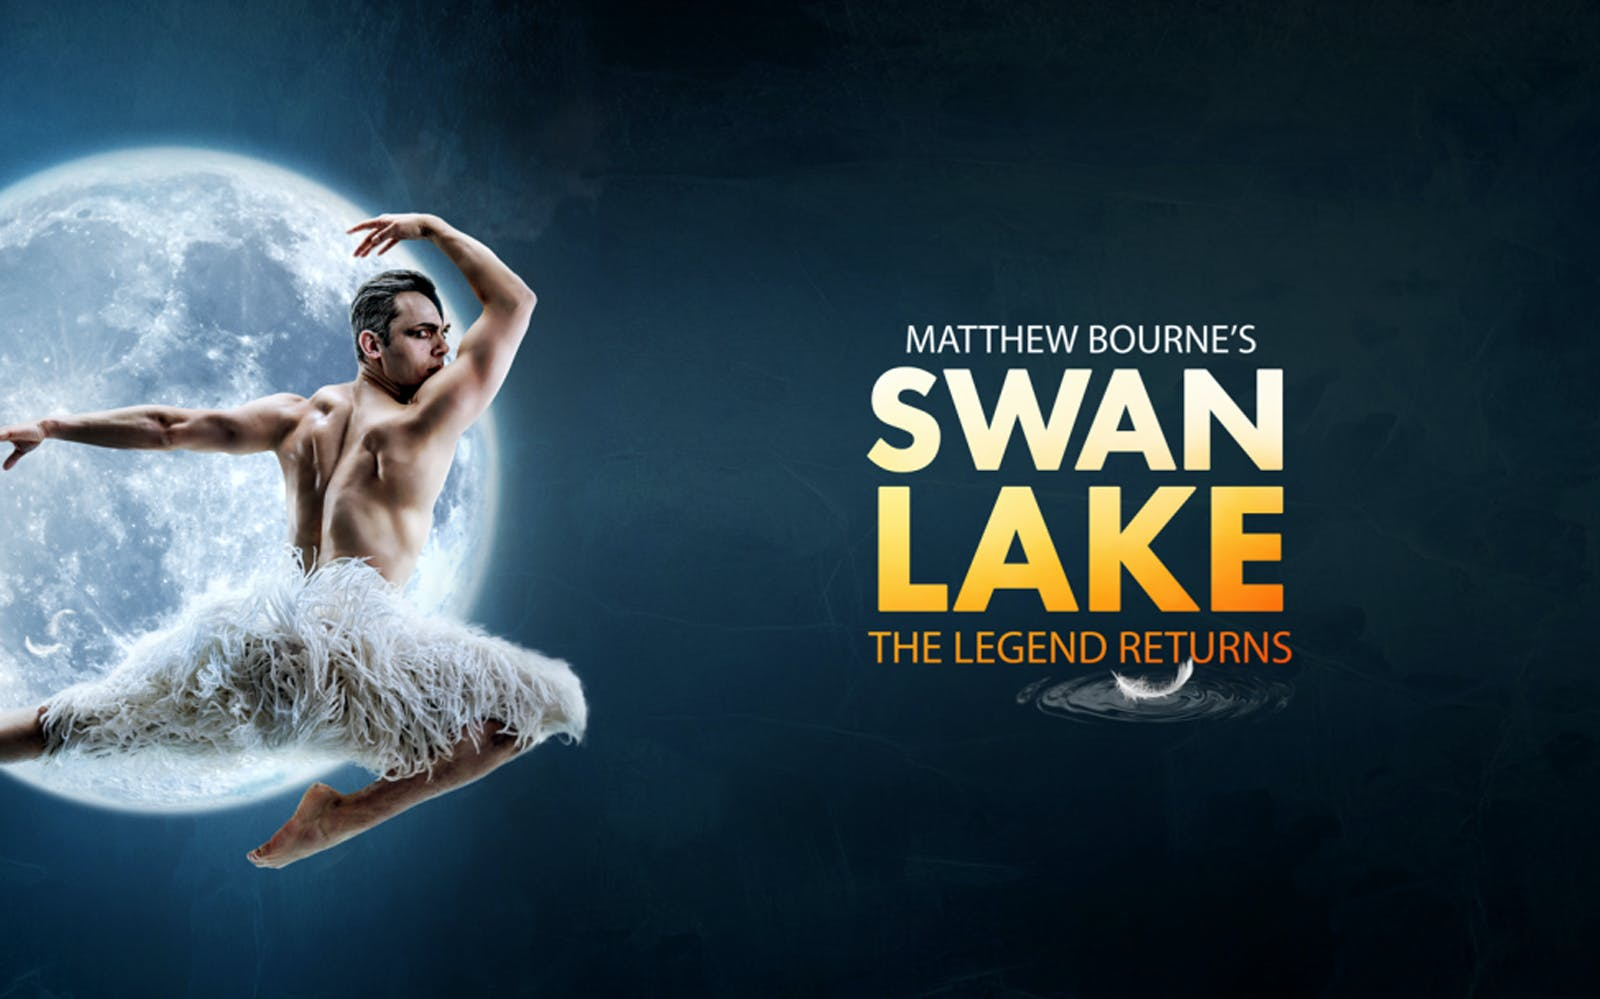 matthew bourne's swan lake-1